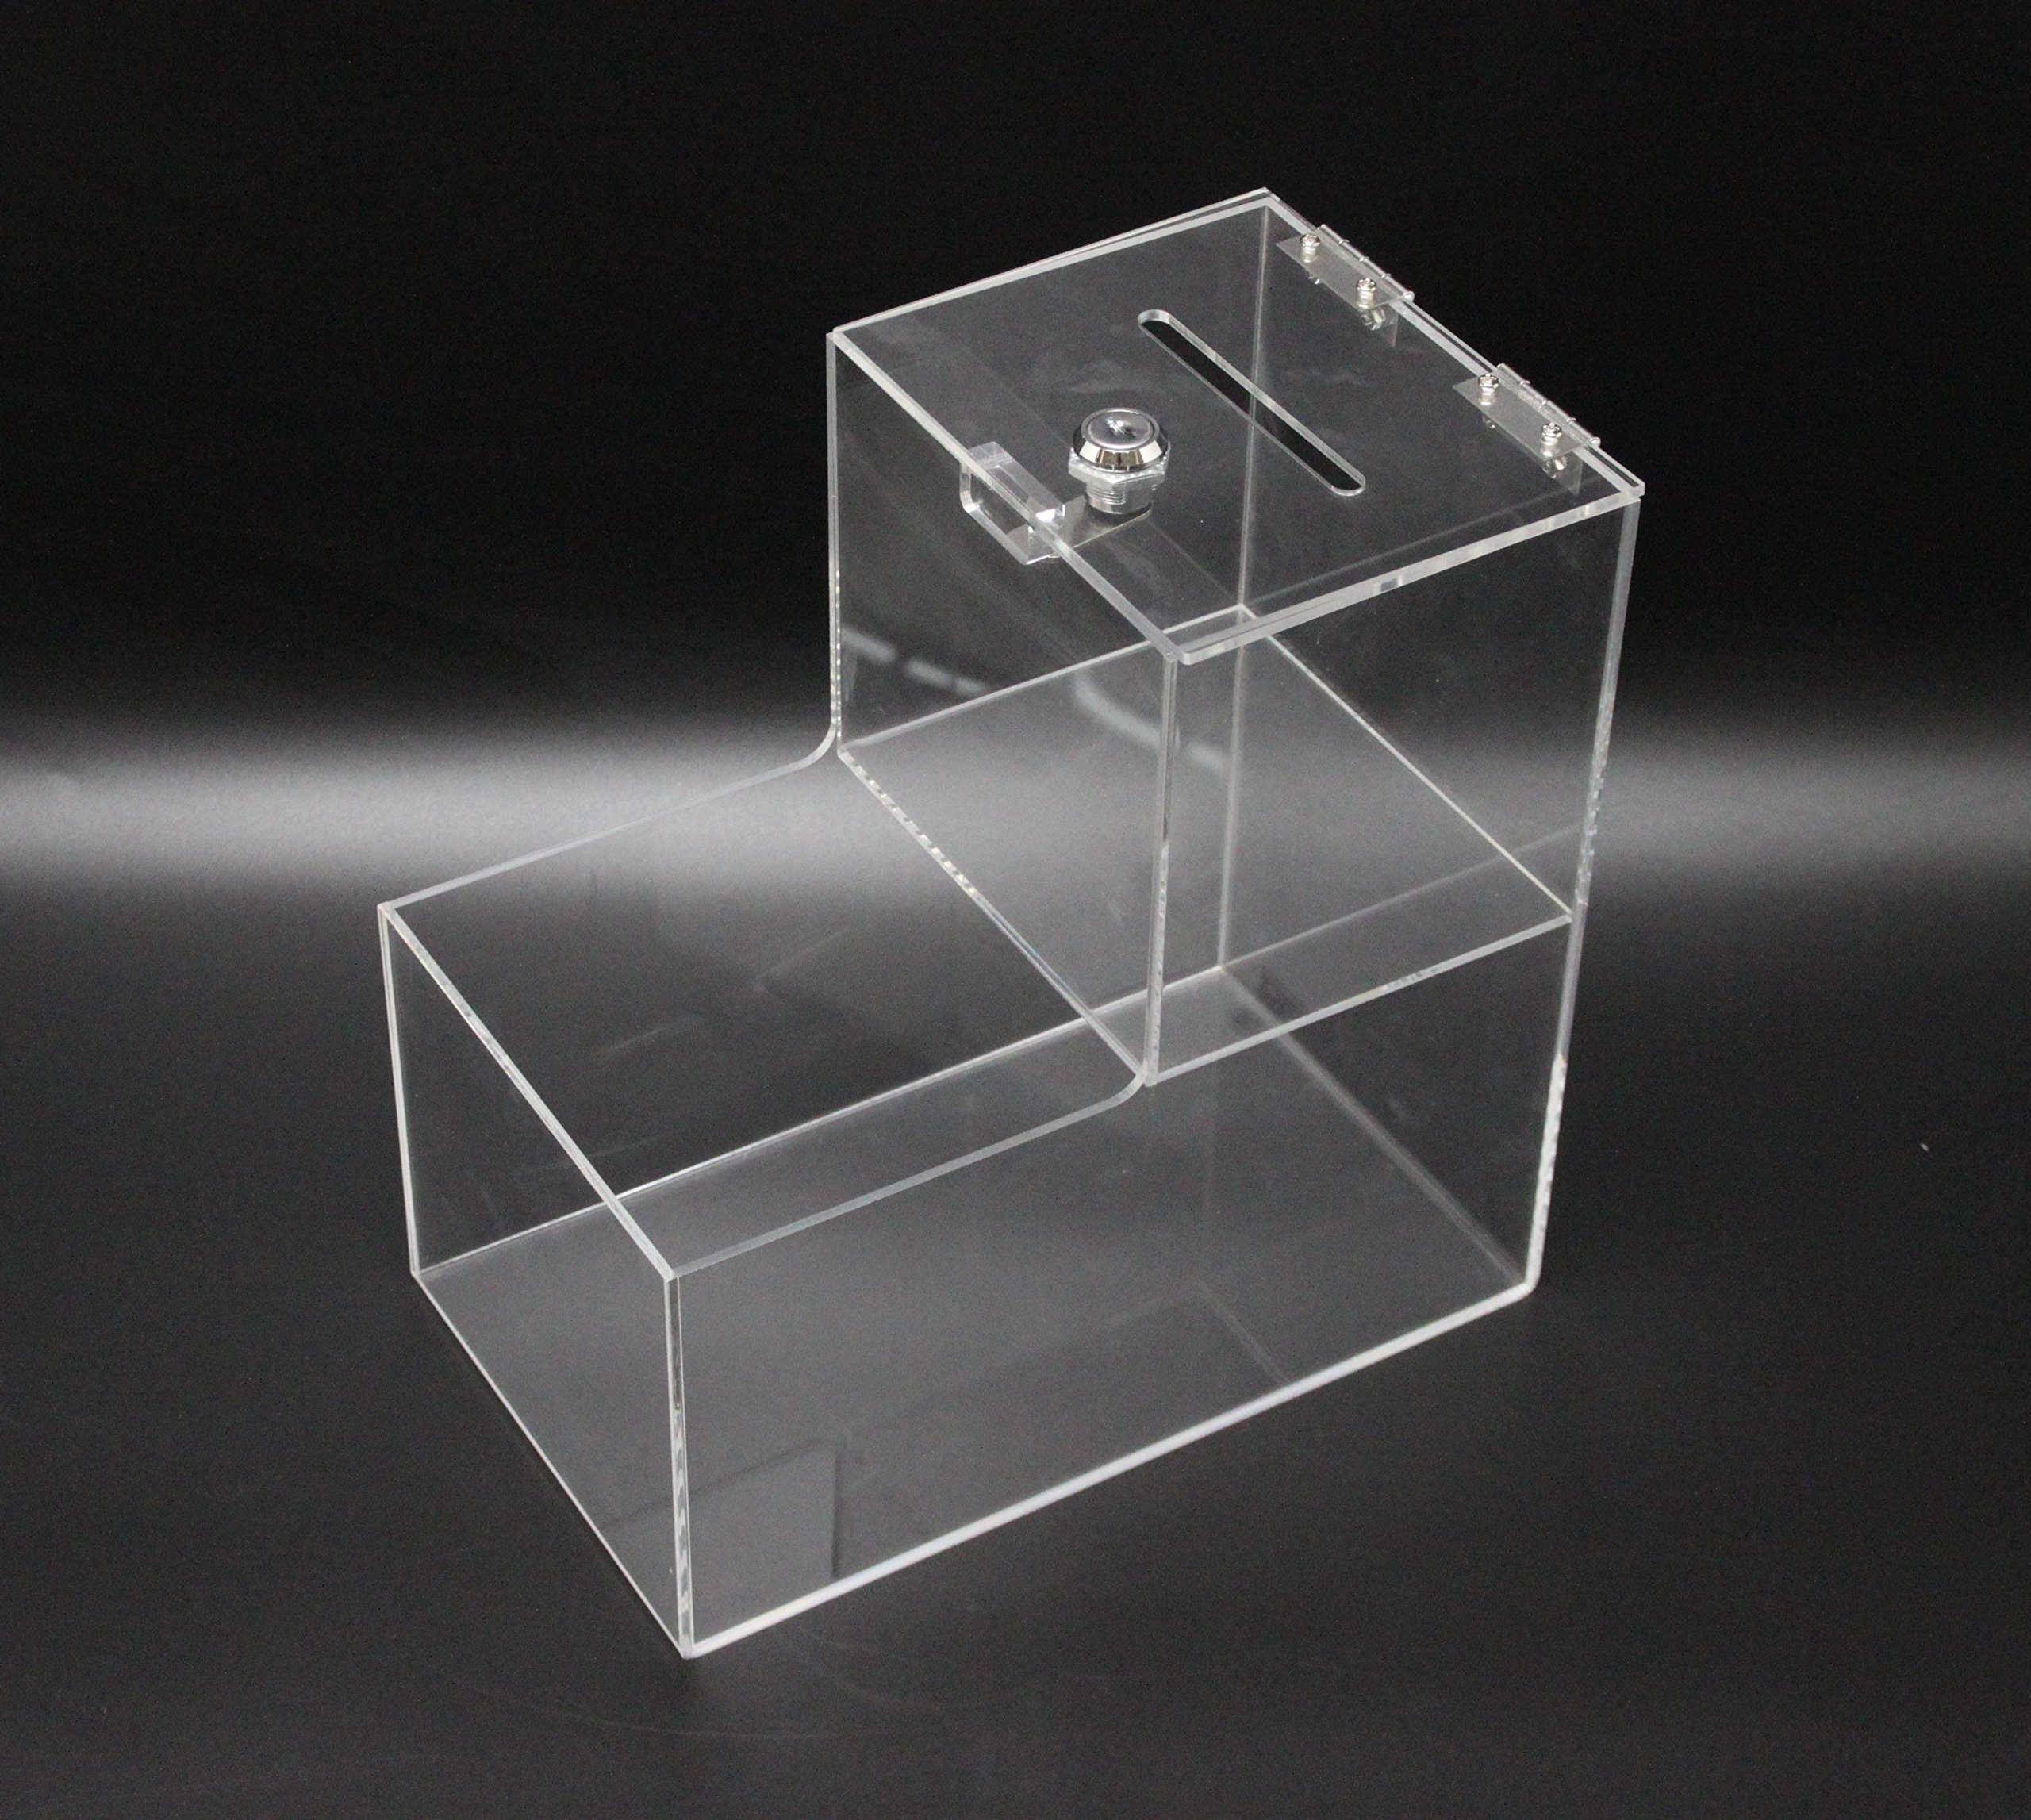 FixtureDisplays 6x10x10'' Locking Acrylic Fundraising Donation Coin Box Container with Cam Lock + Product Compartment 15944